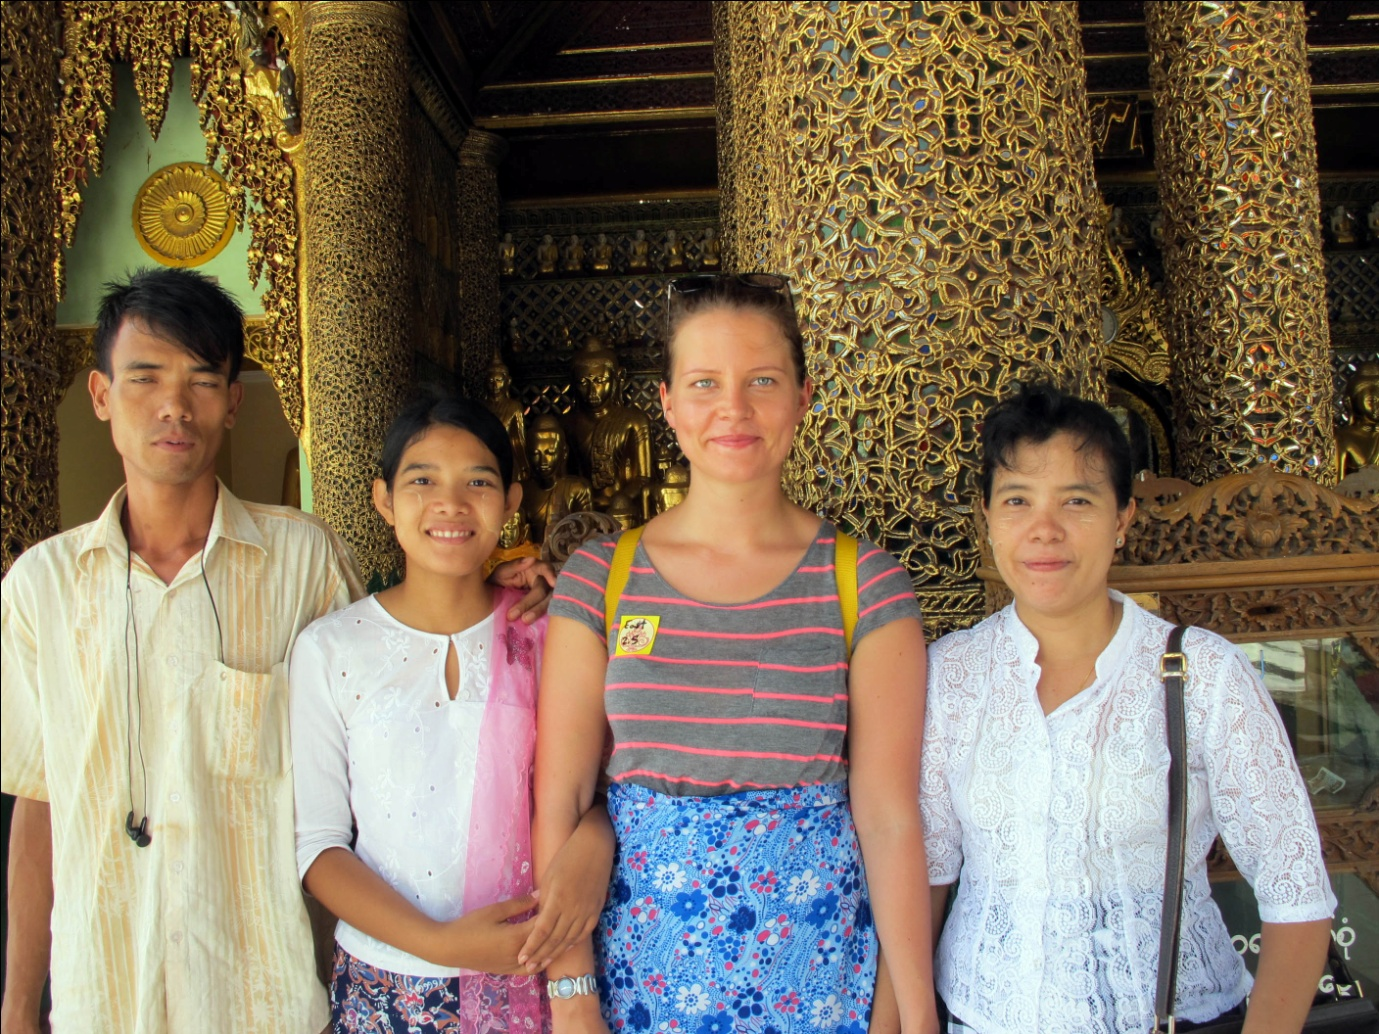 Talking with local people is a great way to get a better understanding of culture and modern life in Myanmar